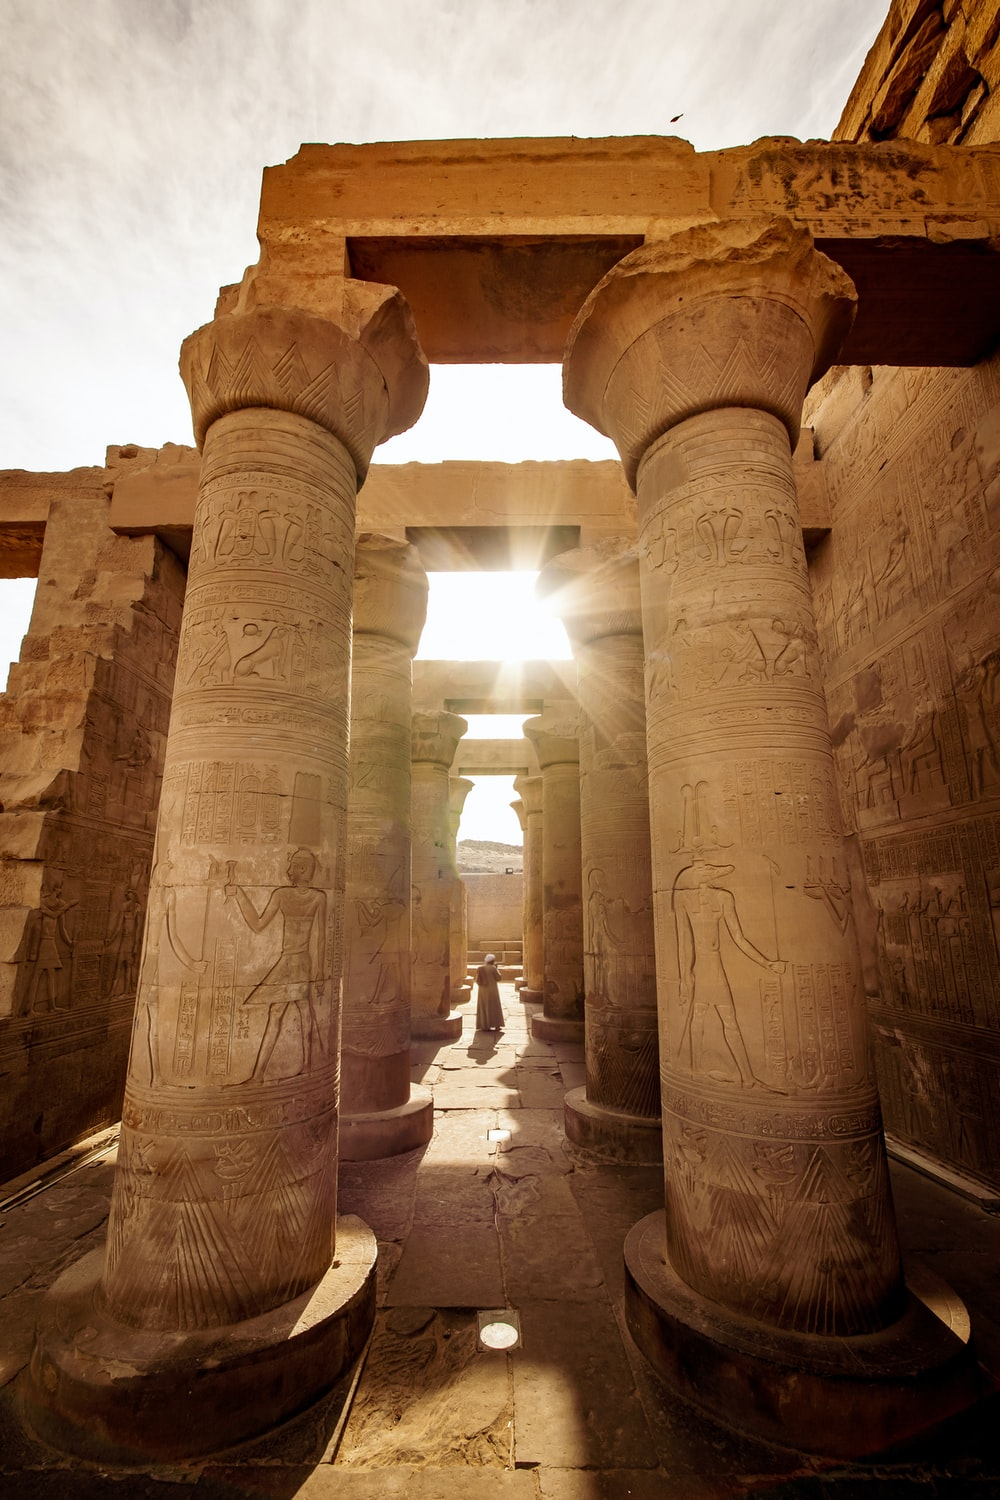 500 Stunning Egypt Pictures Scenic Travel Photos Download Free Images On Unsplash